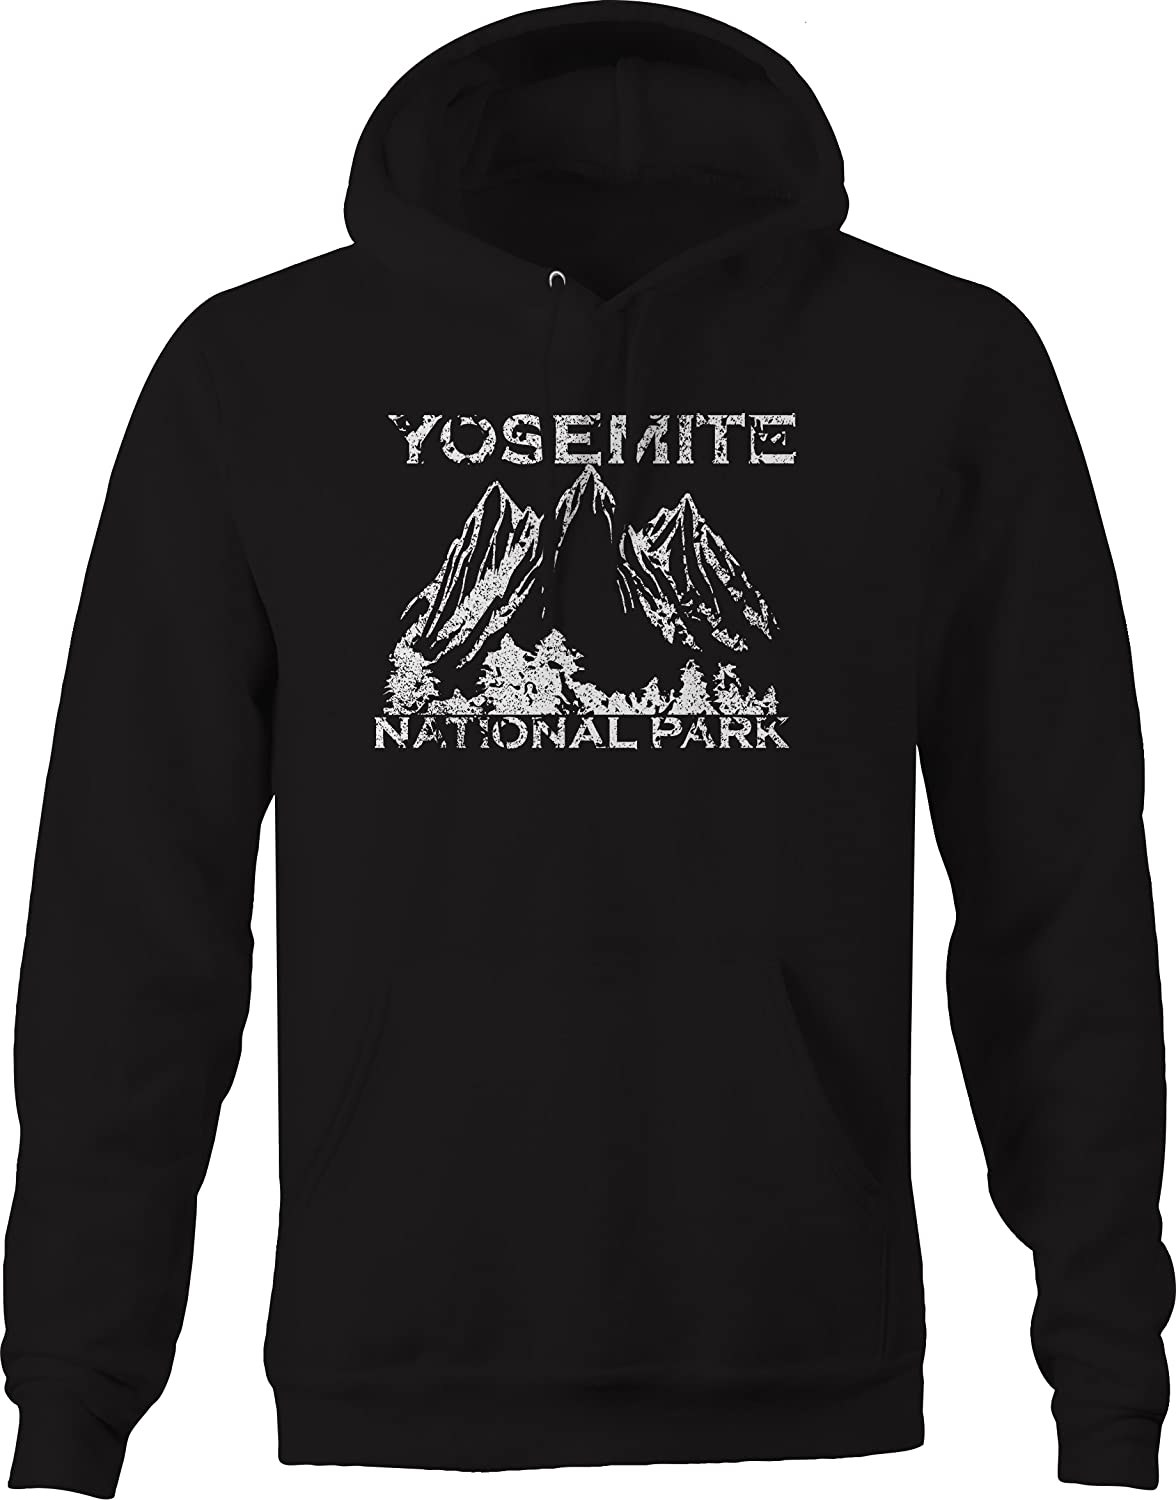 Yosemite National Park California Sweatshirt Distressed